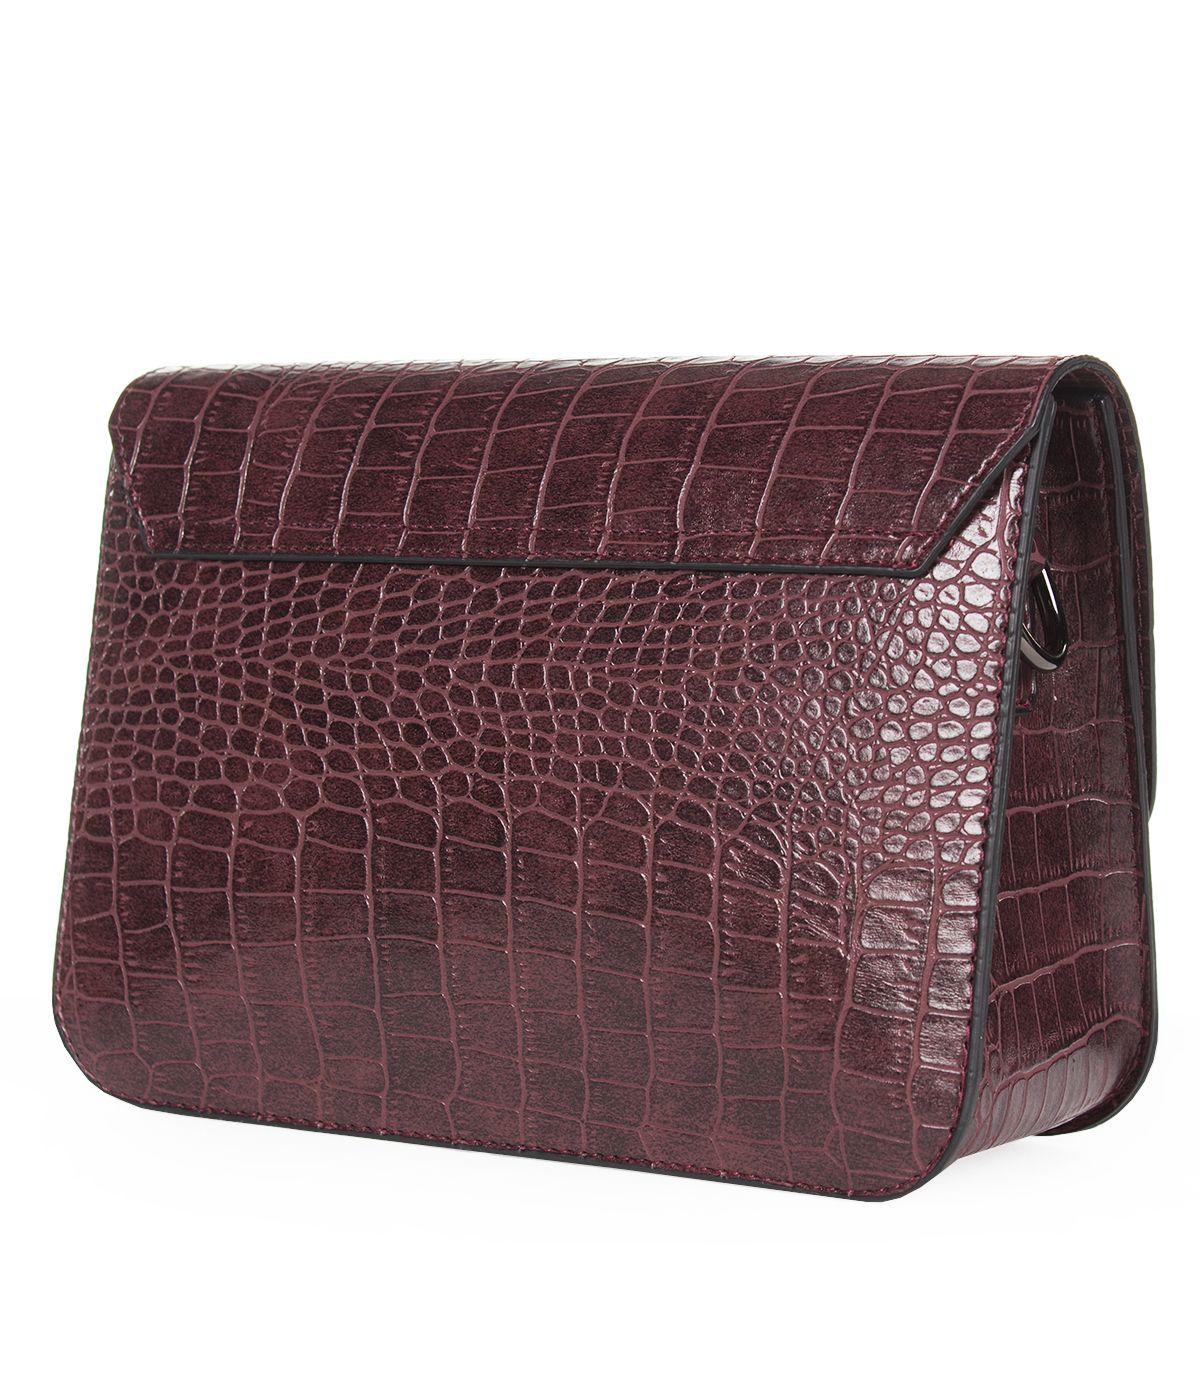 LEATHER BORDO  BAG WITH SNAKE SKIN IMITATION  1